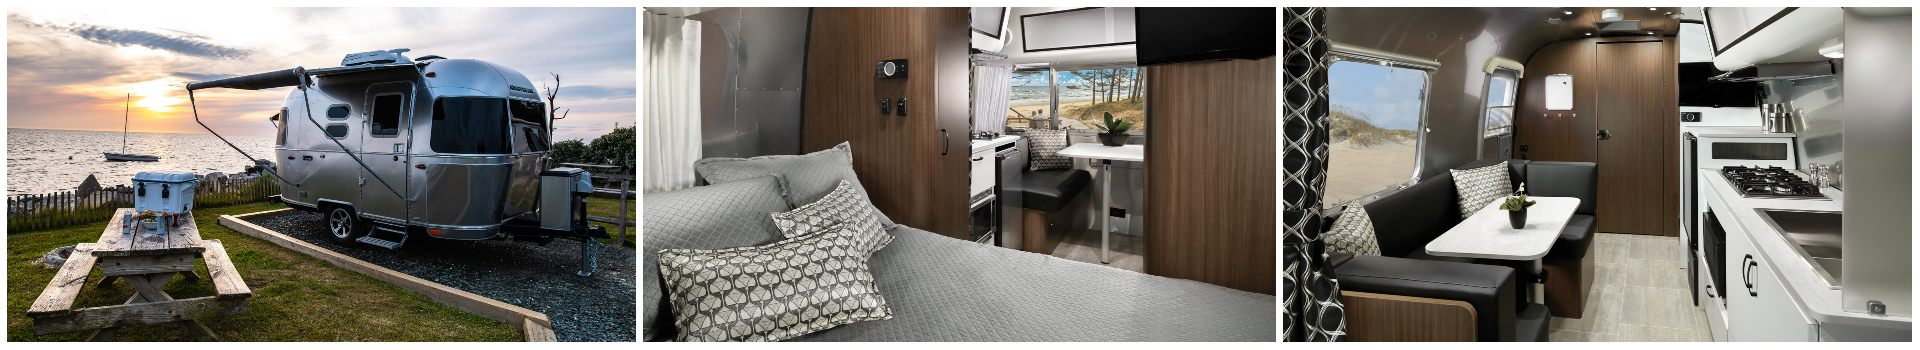 2020 Airstream Caravel Features